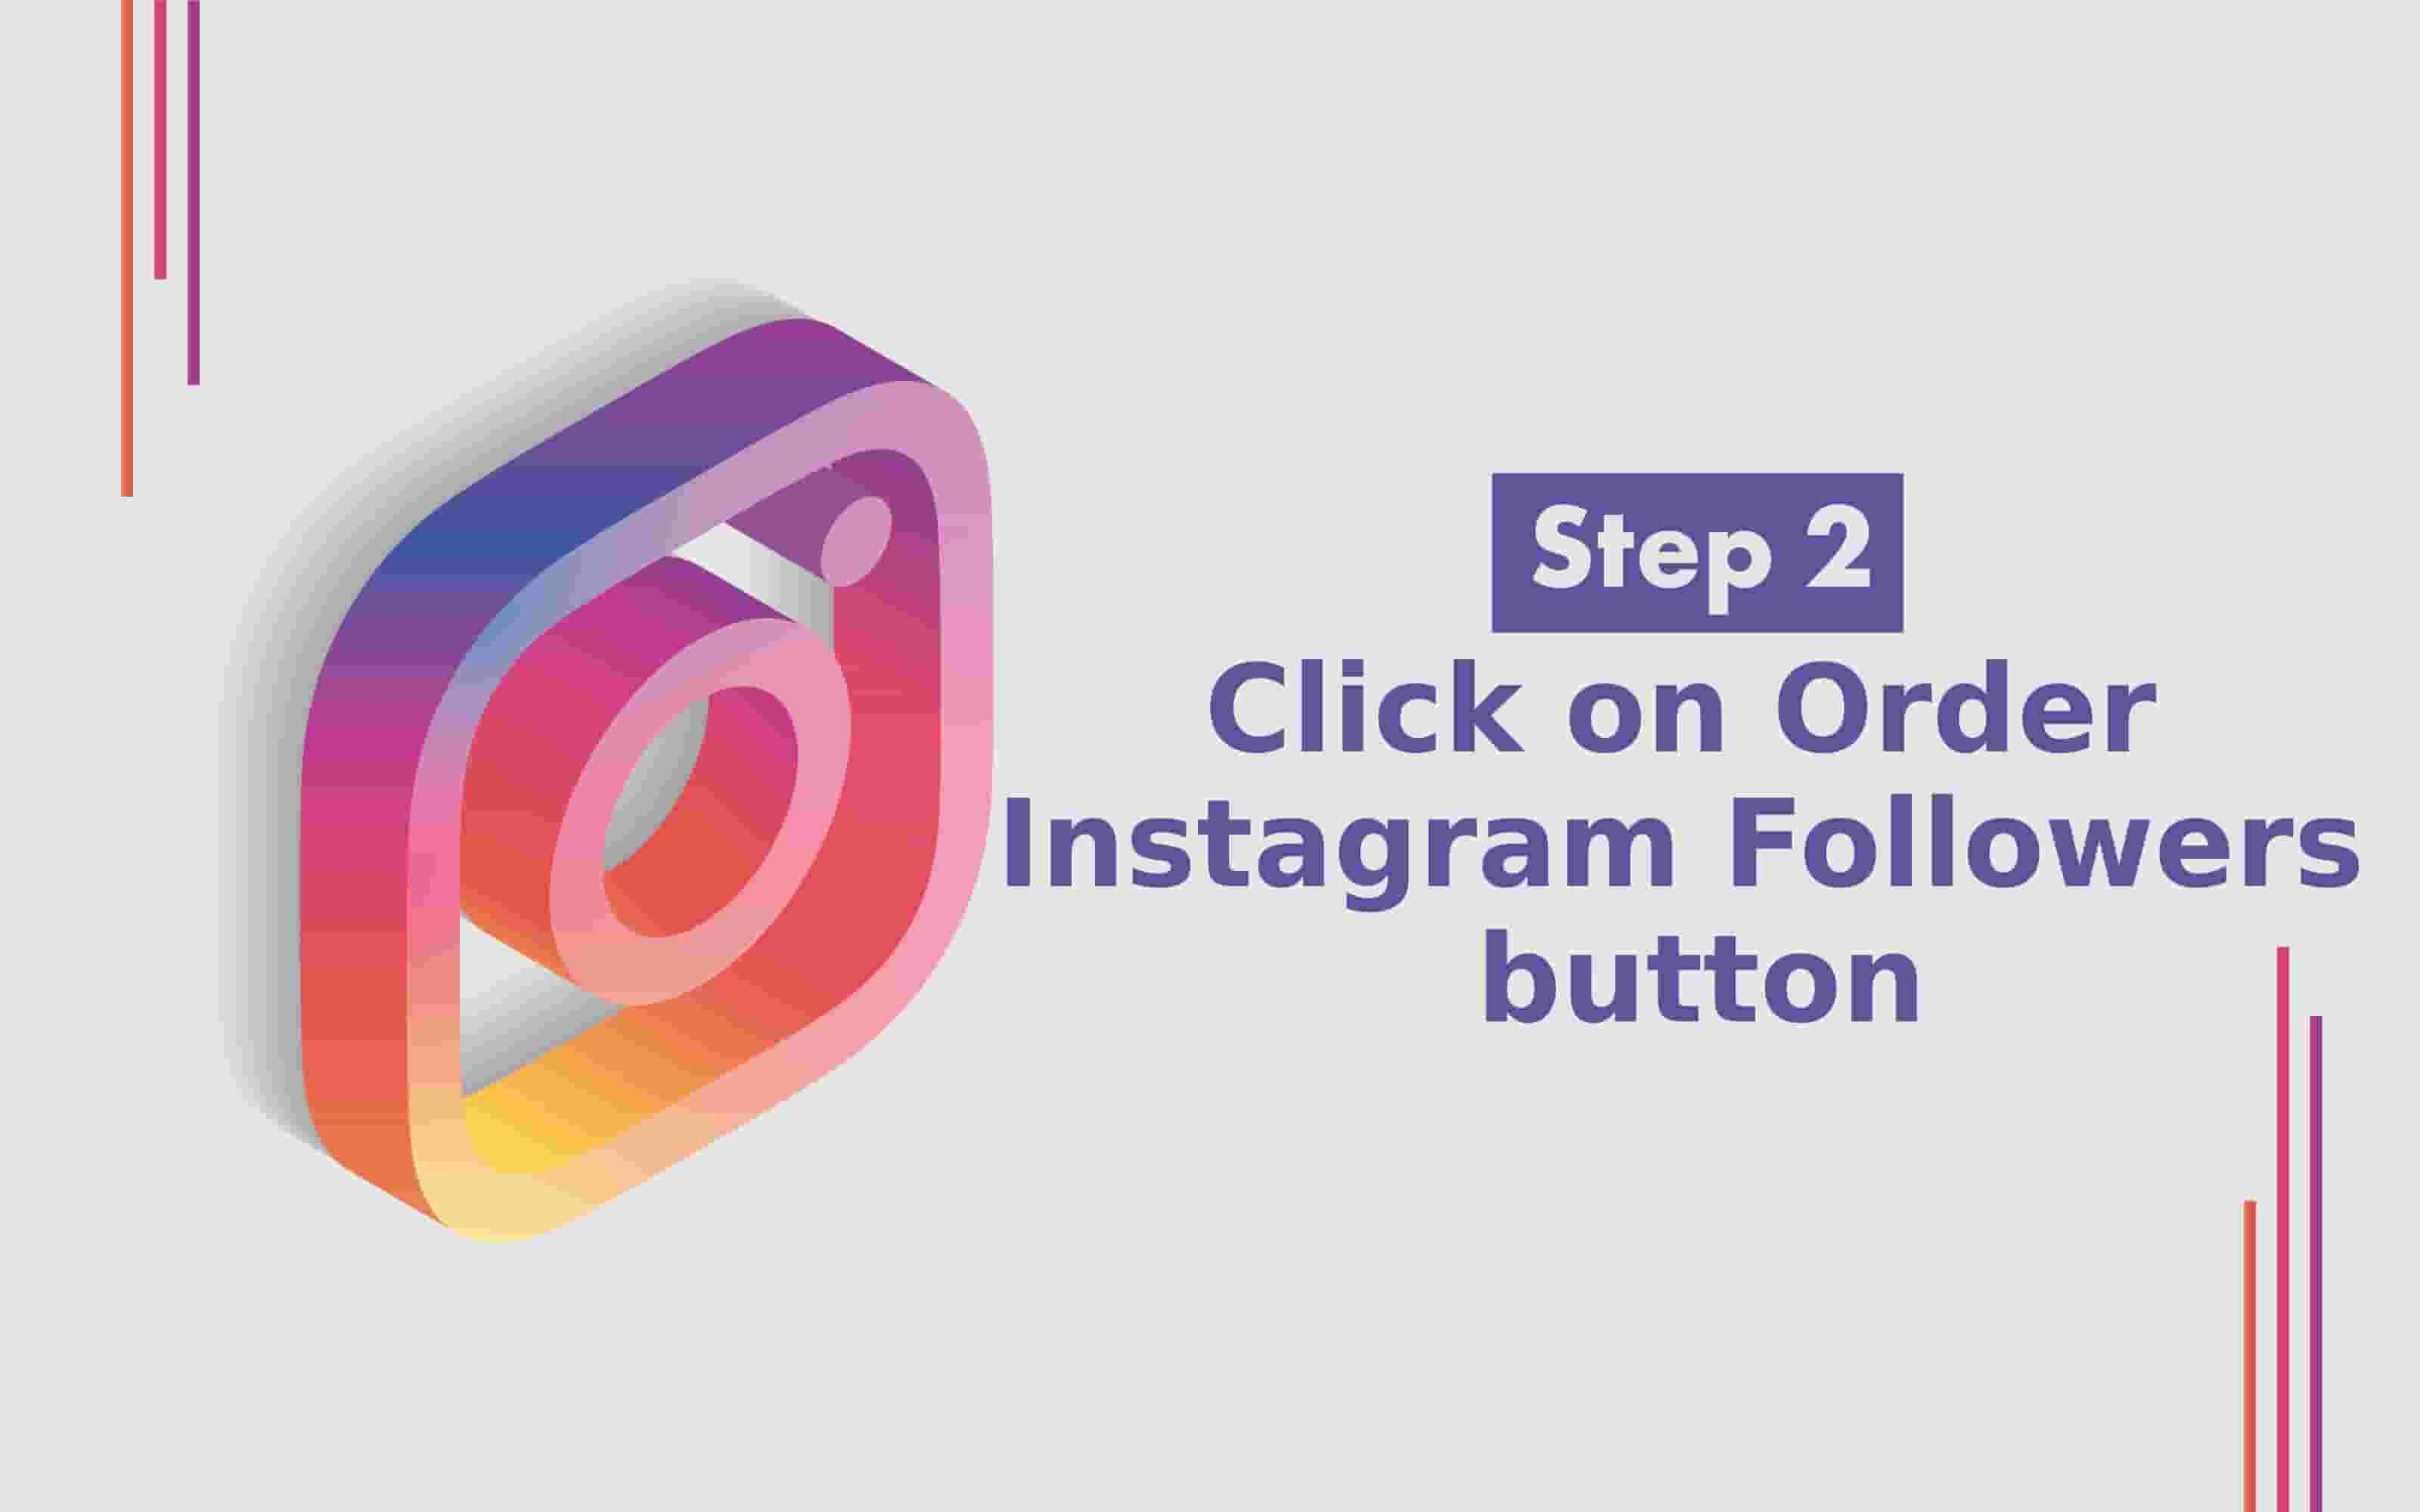 How to Buy Instagram followers step 2